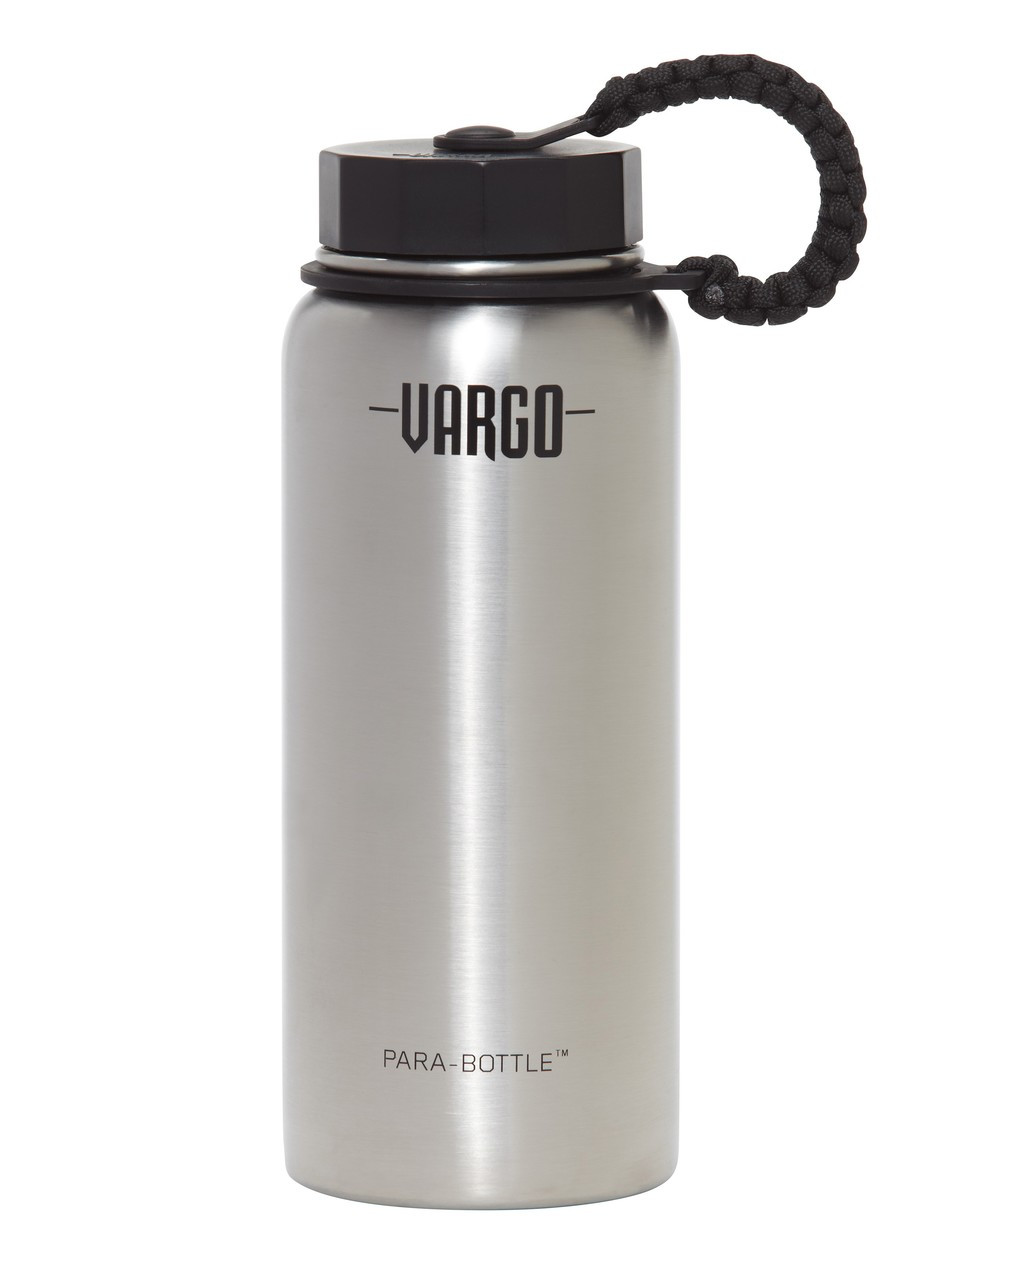 Vargo Stainless Steel Para-bottle